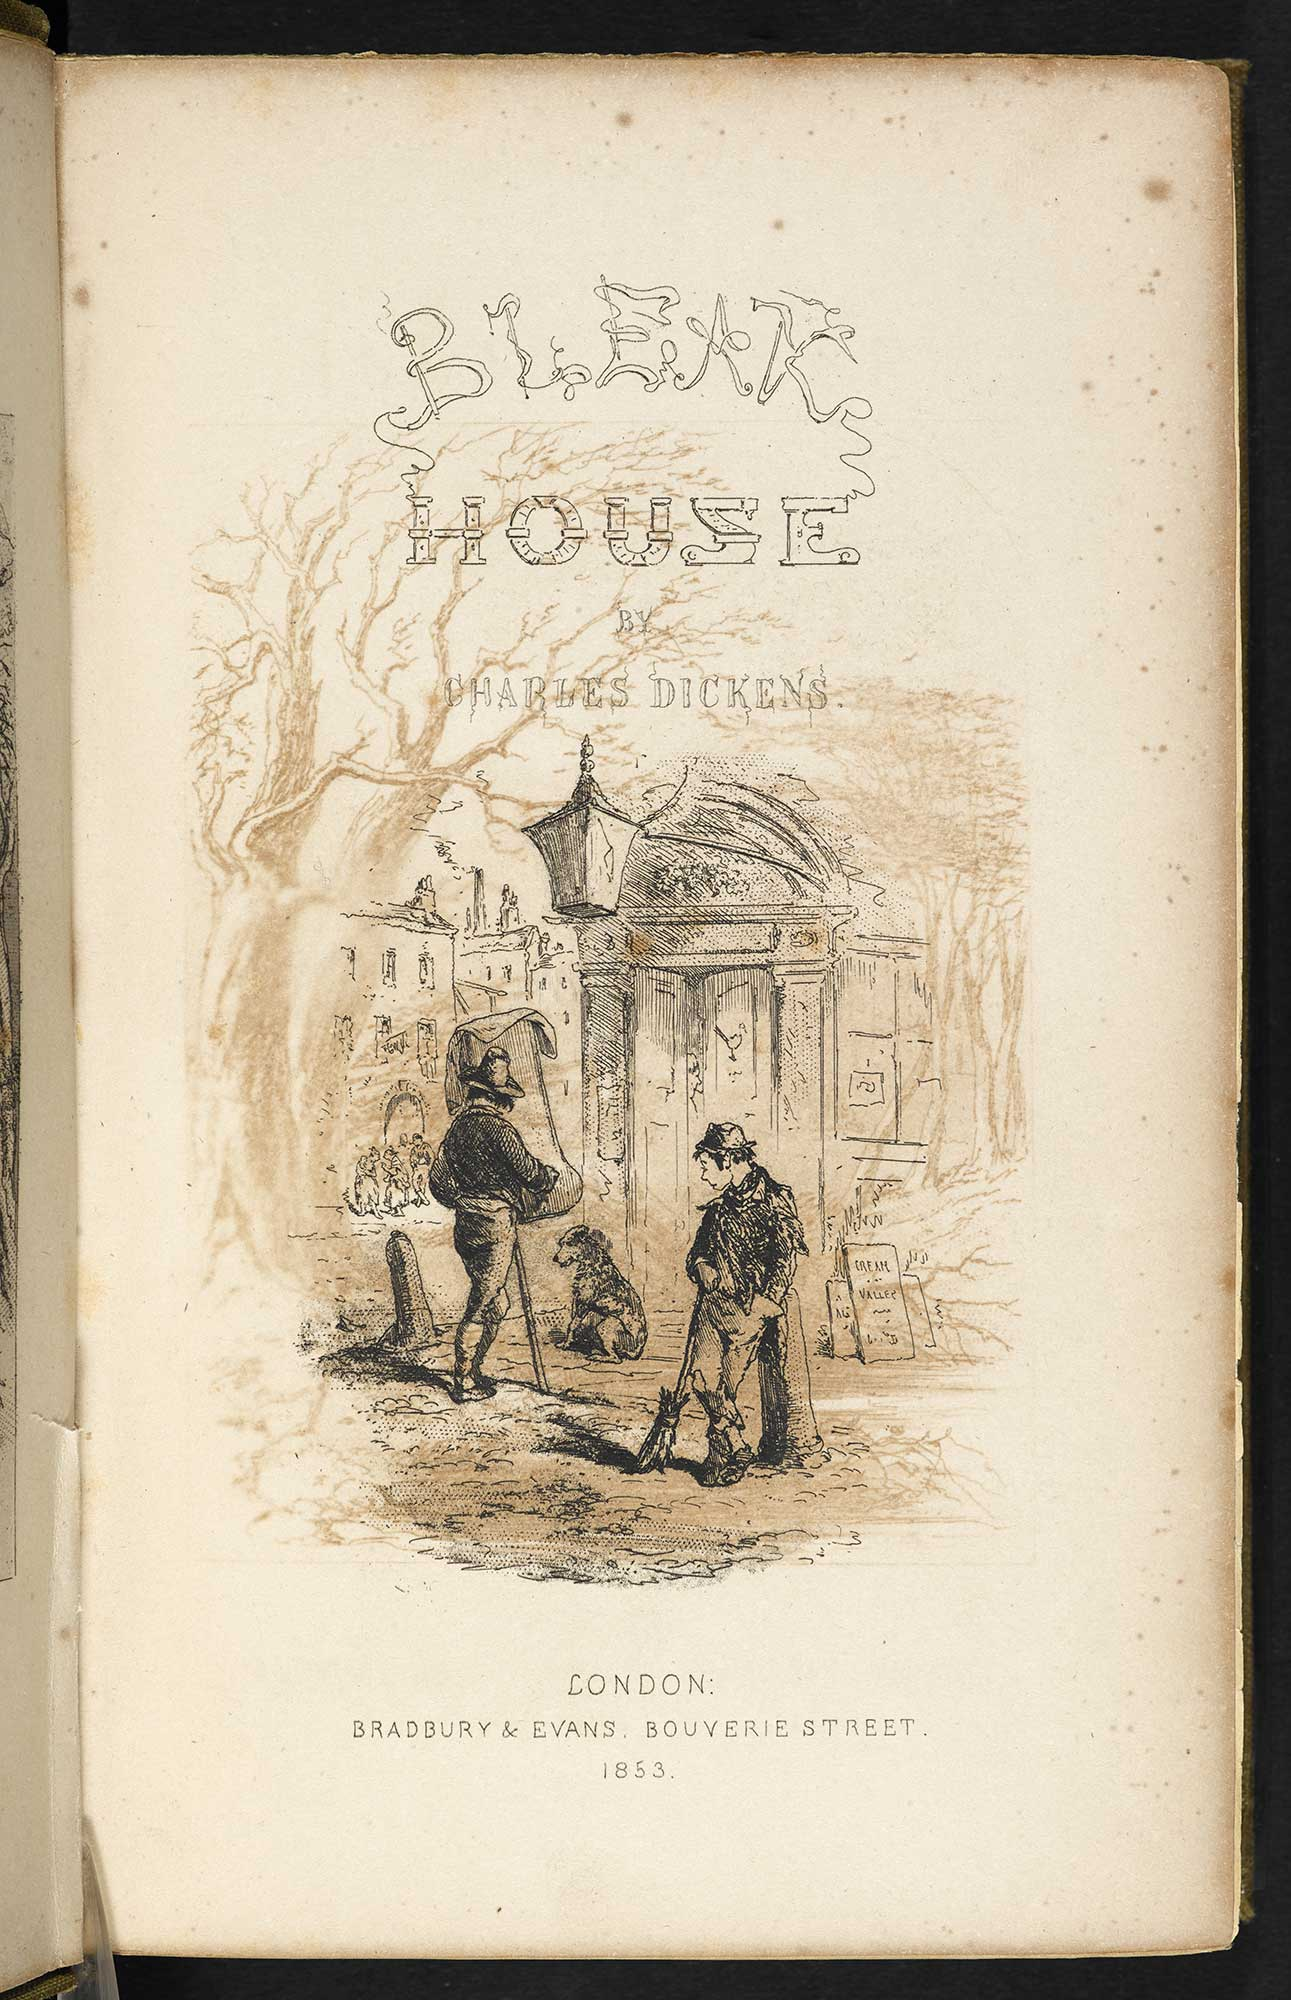 Bleak House first edition with illustrations [page: [1]]